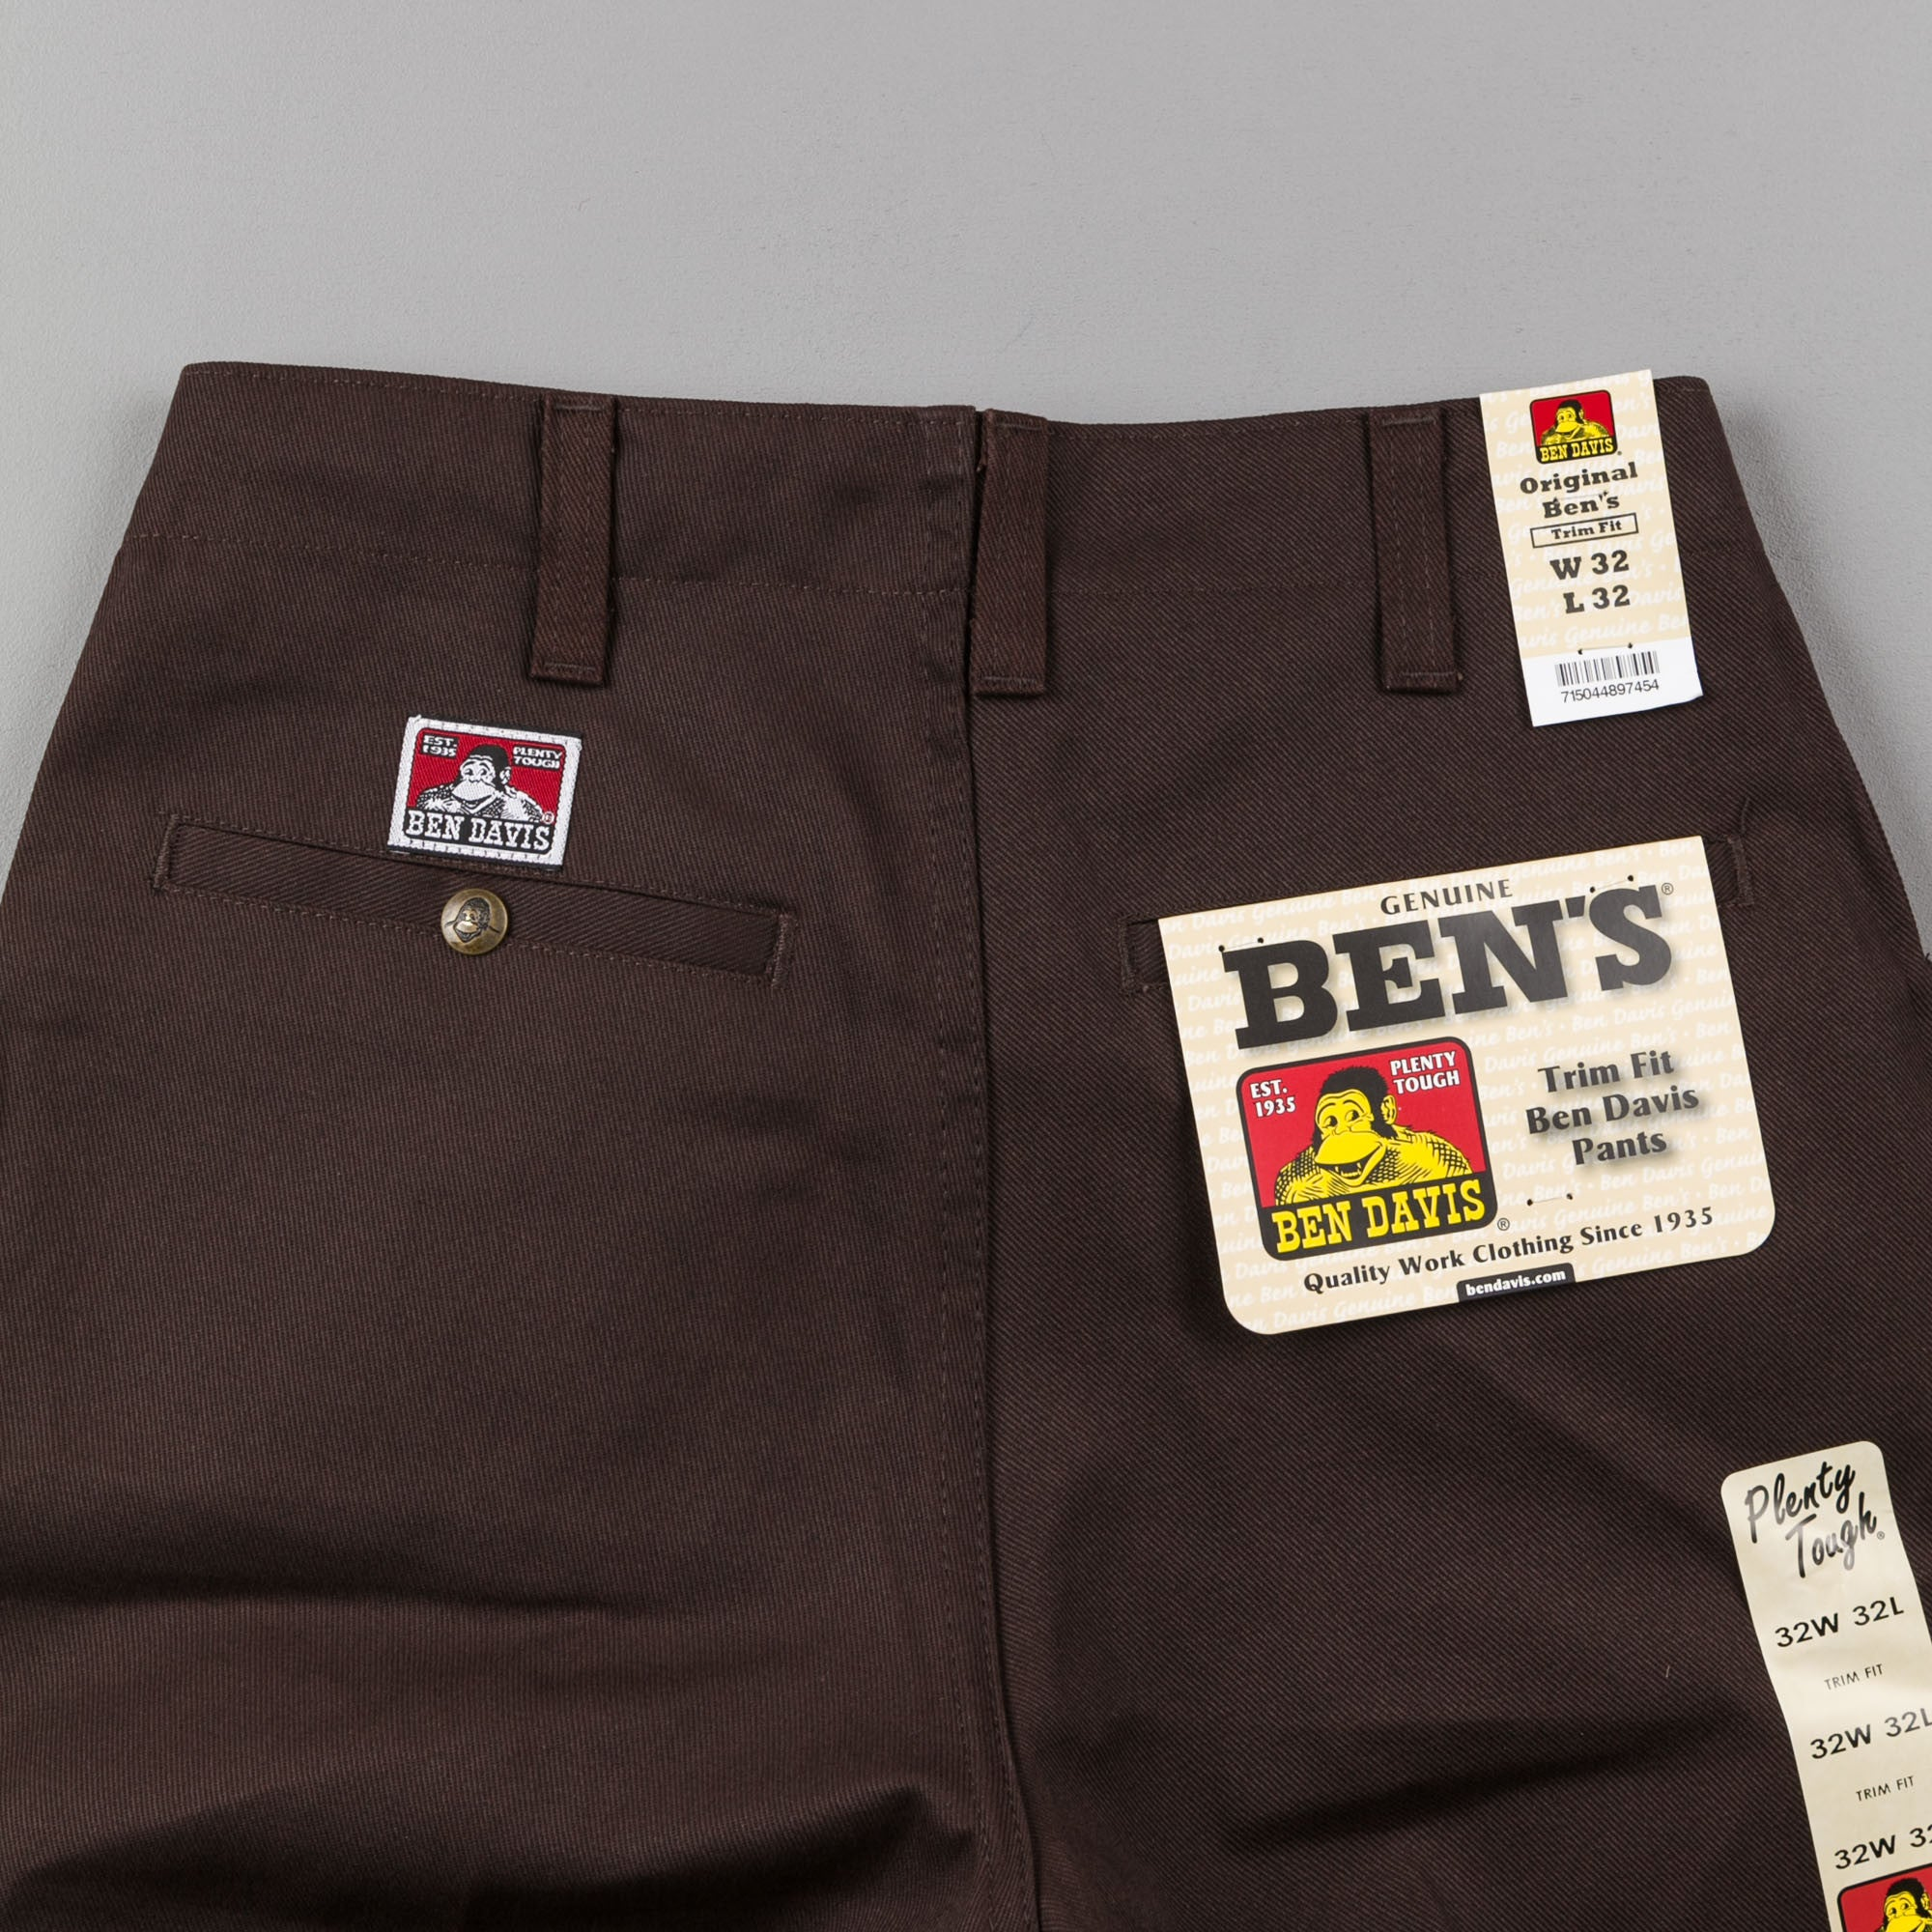 Ben Davis Trim Fit Trousers - Brown